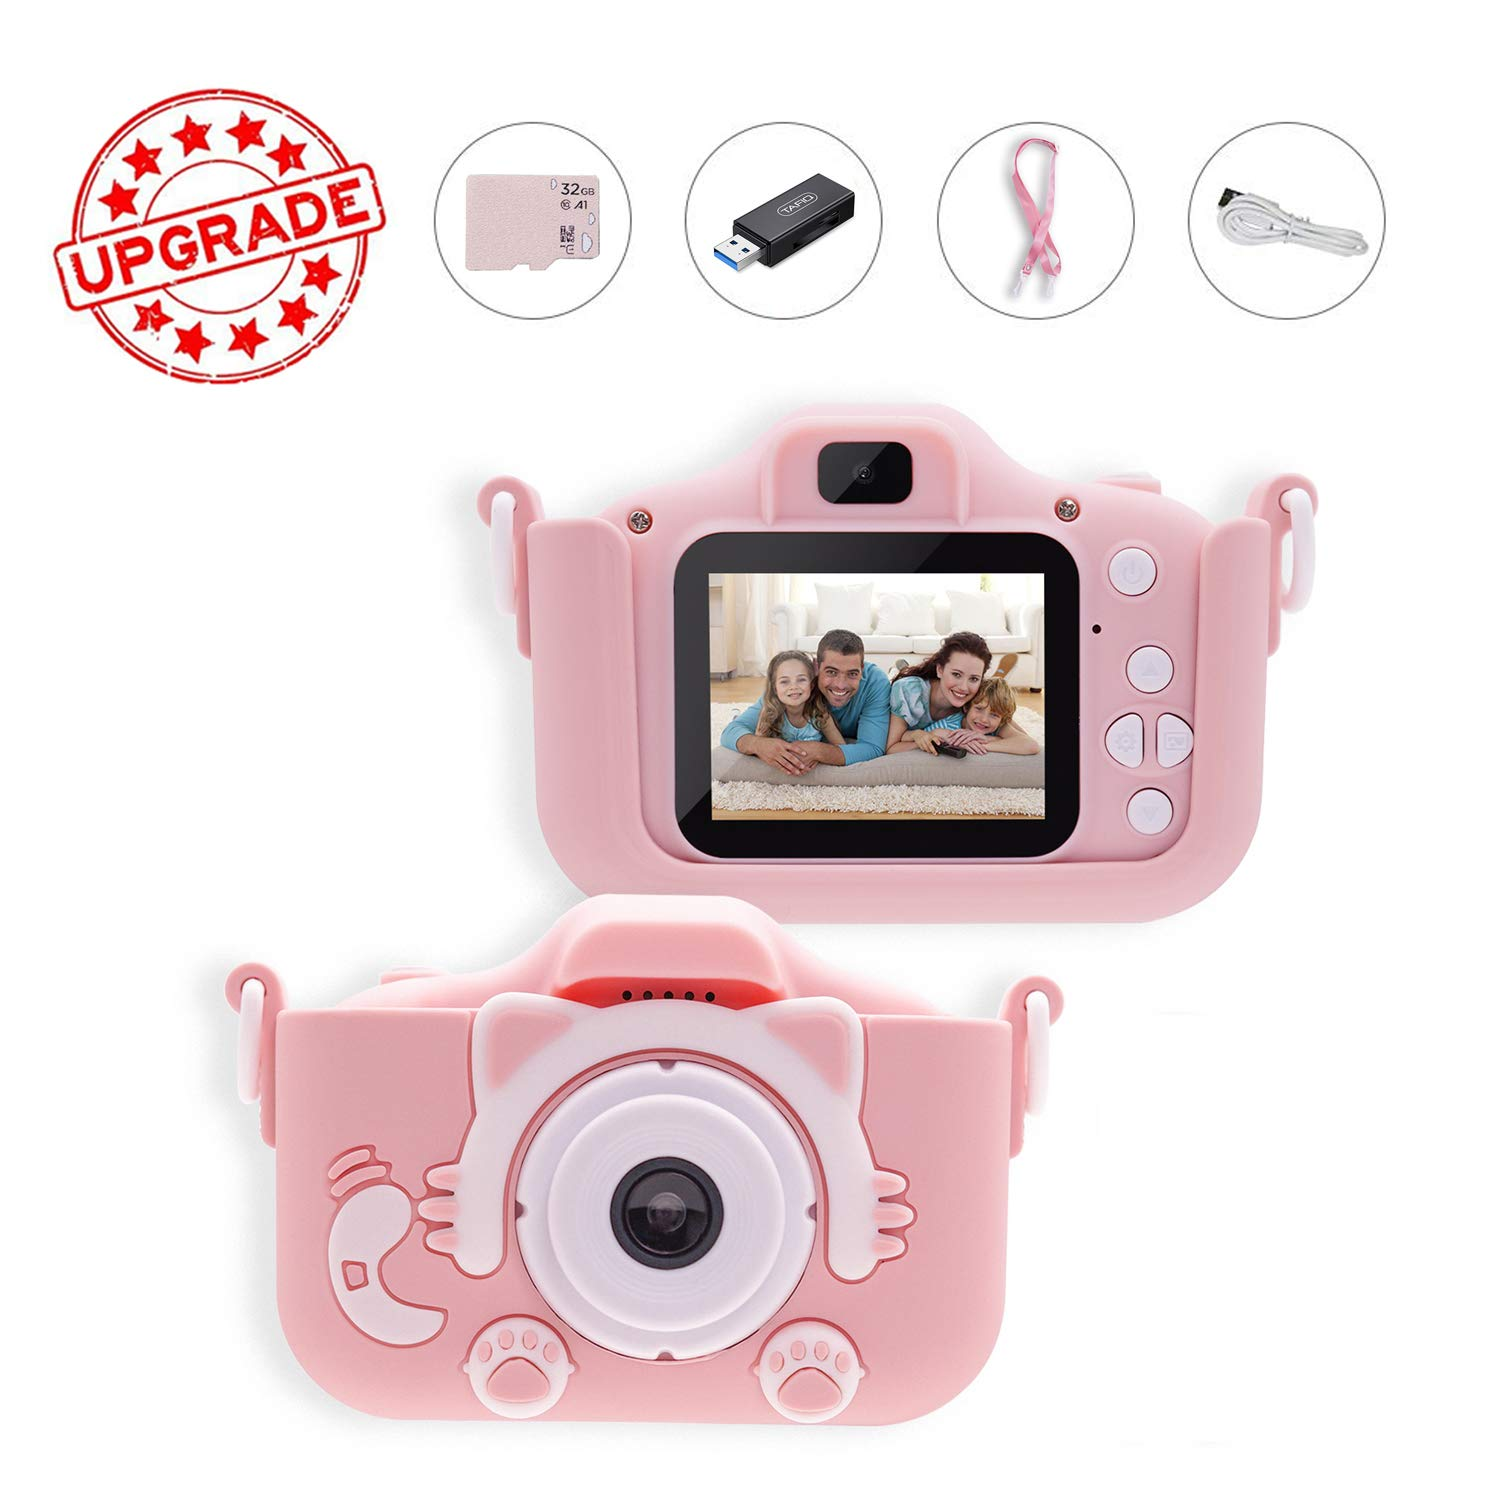 Kids Camera, BZ Digital Video Camera for Girls, Toddlers, Toy, and Girls, Age 3 4 5 6 7 8 9 10 with 32GB SD Card(Pink)